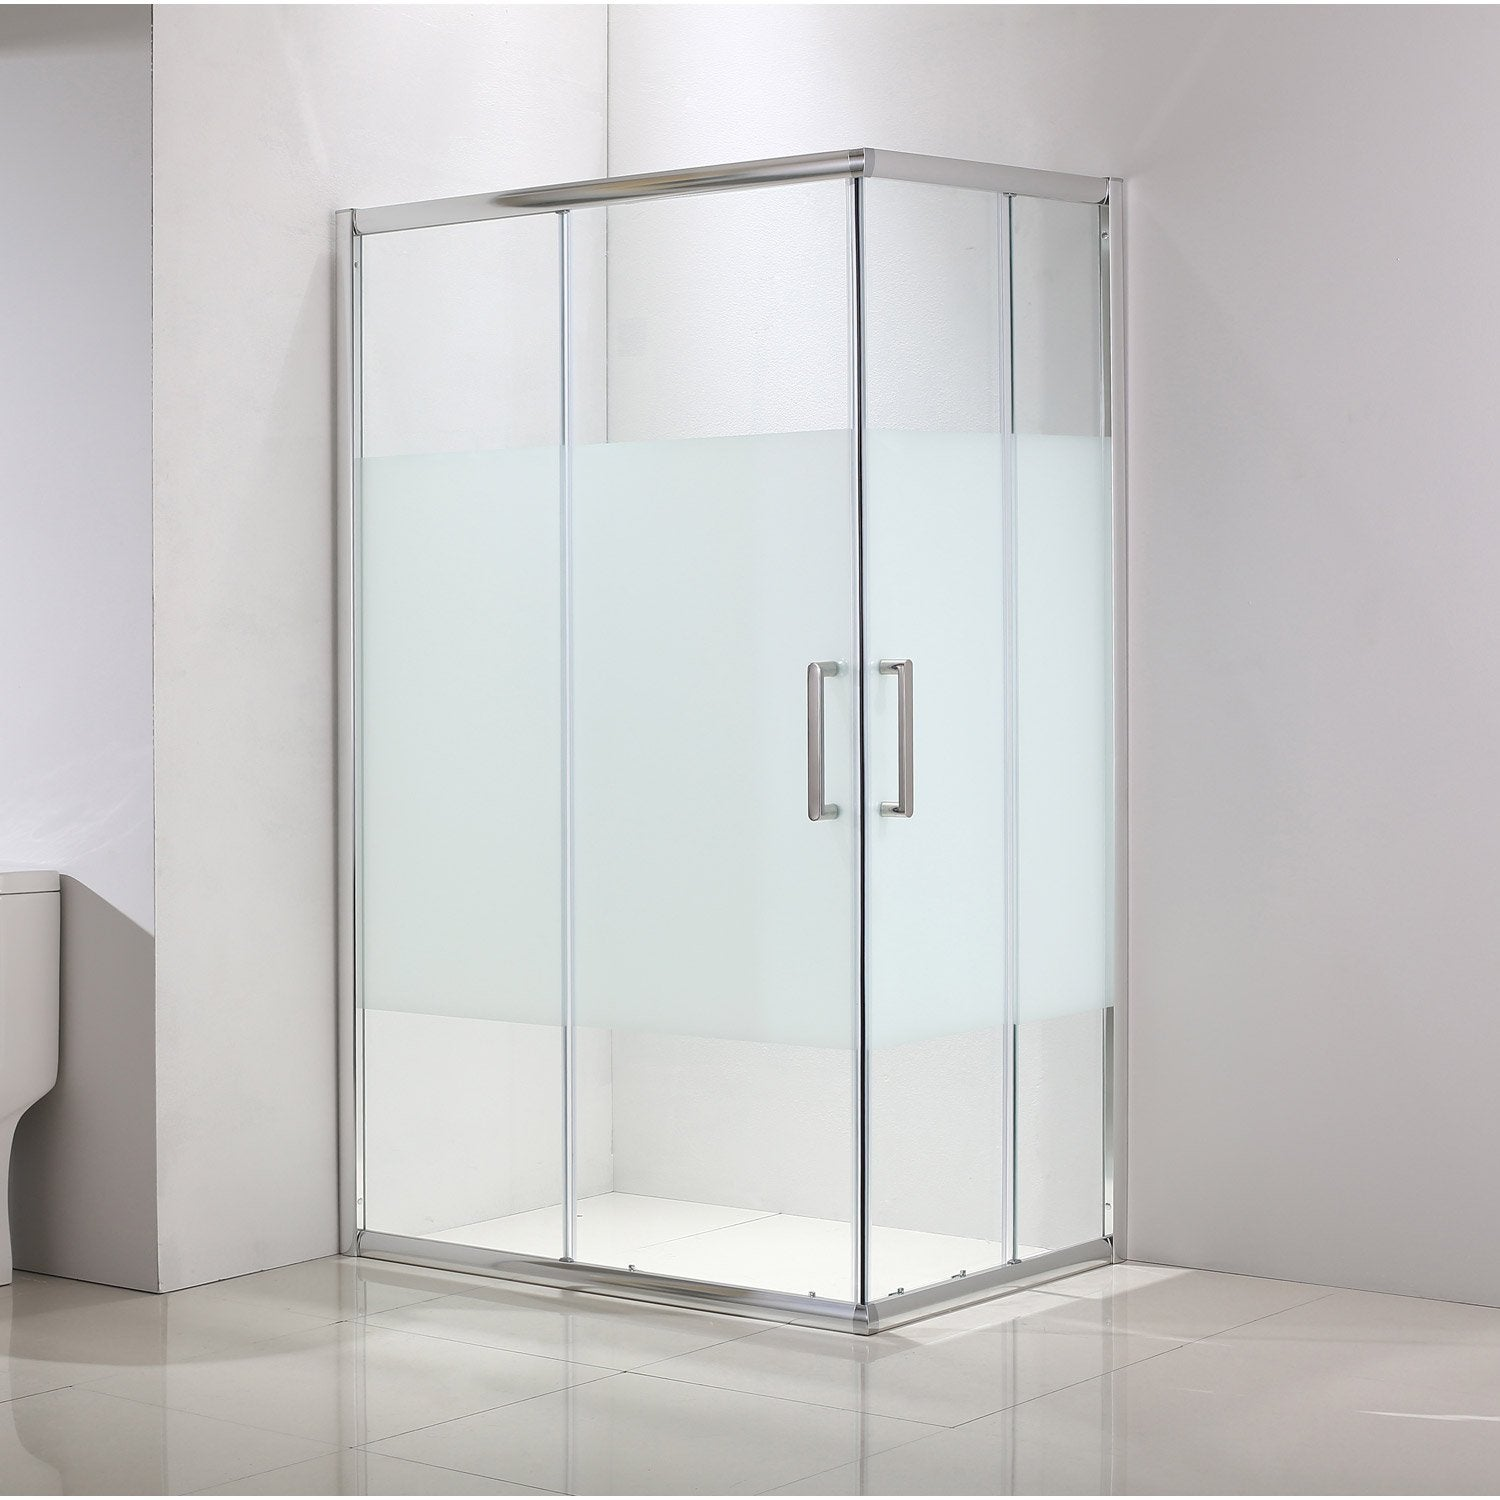 Porte de douche coulissante angle rectangle 100 x 80 cm s rigraphi quad - Porte douche coulissante 120 ...